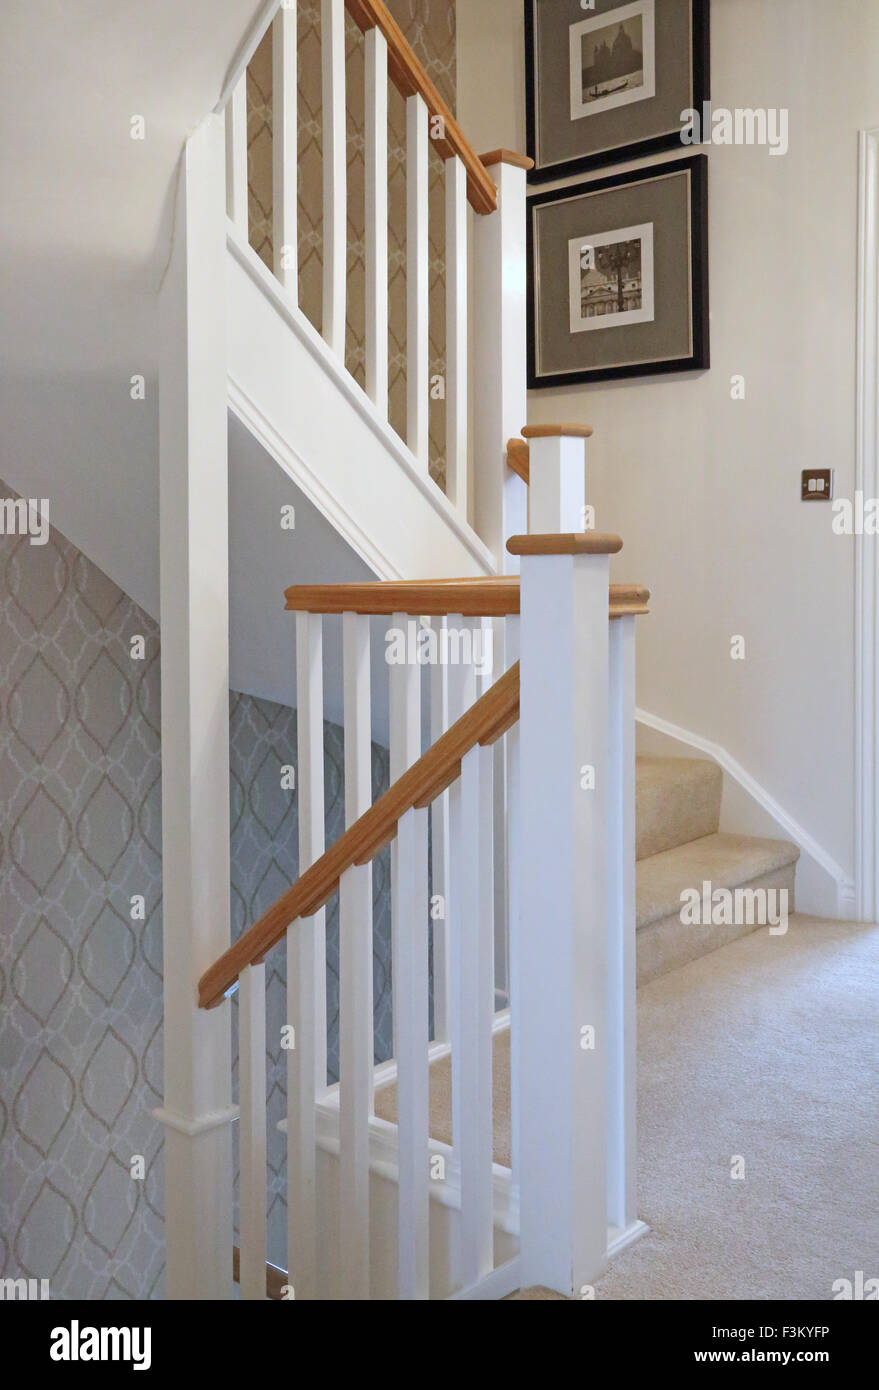 Superb Traditional Timber Staircase And Banisters In A New Three Storey Show Home  Showing Stairs, Newel Posts Stair Structure